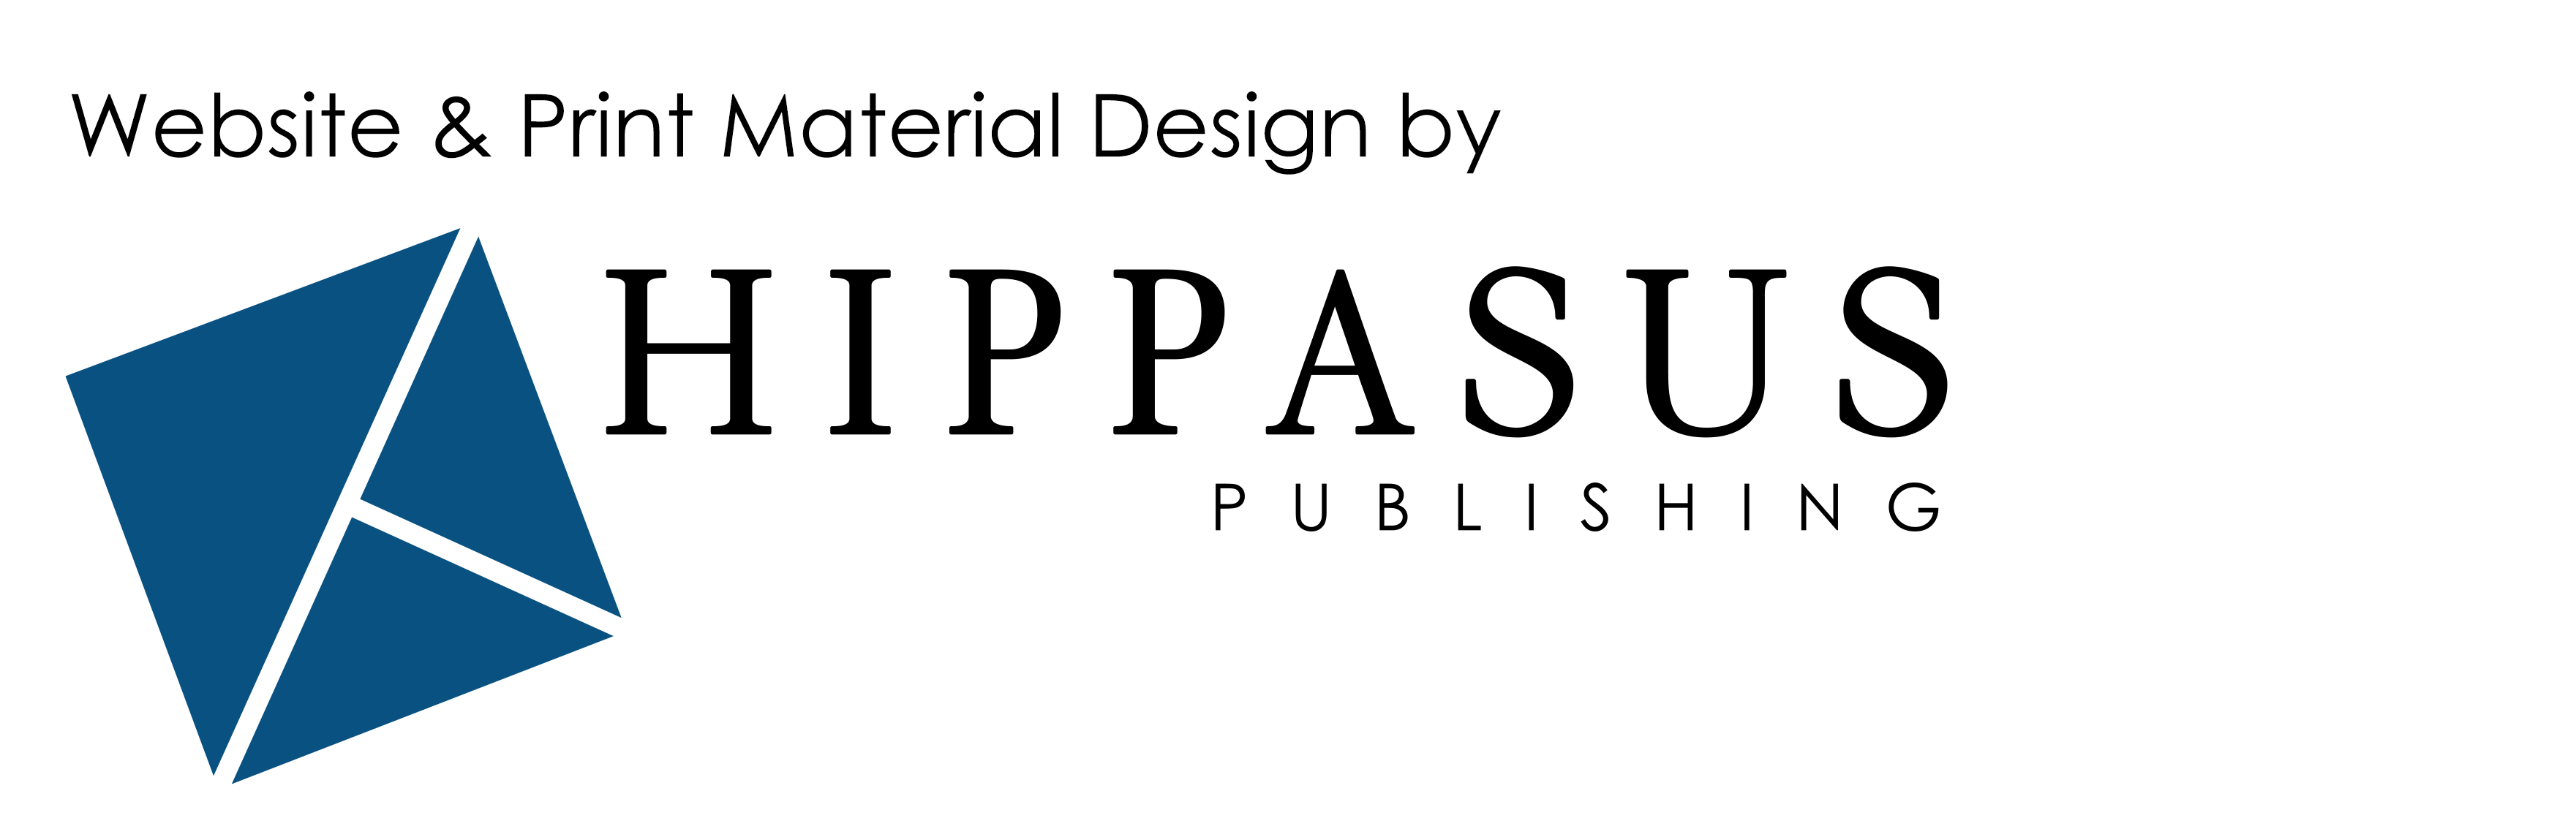 Website & Print Material Design by Hippasus Publishing